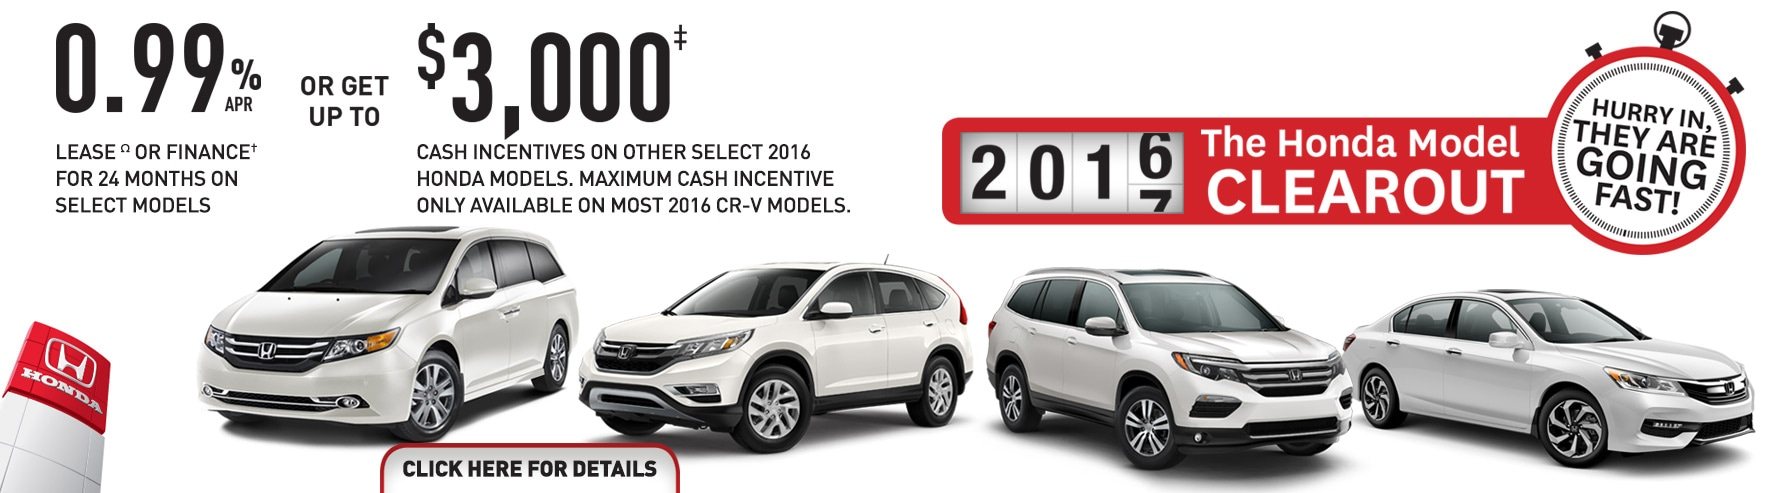 number 7 honda car dealership offering new and used